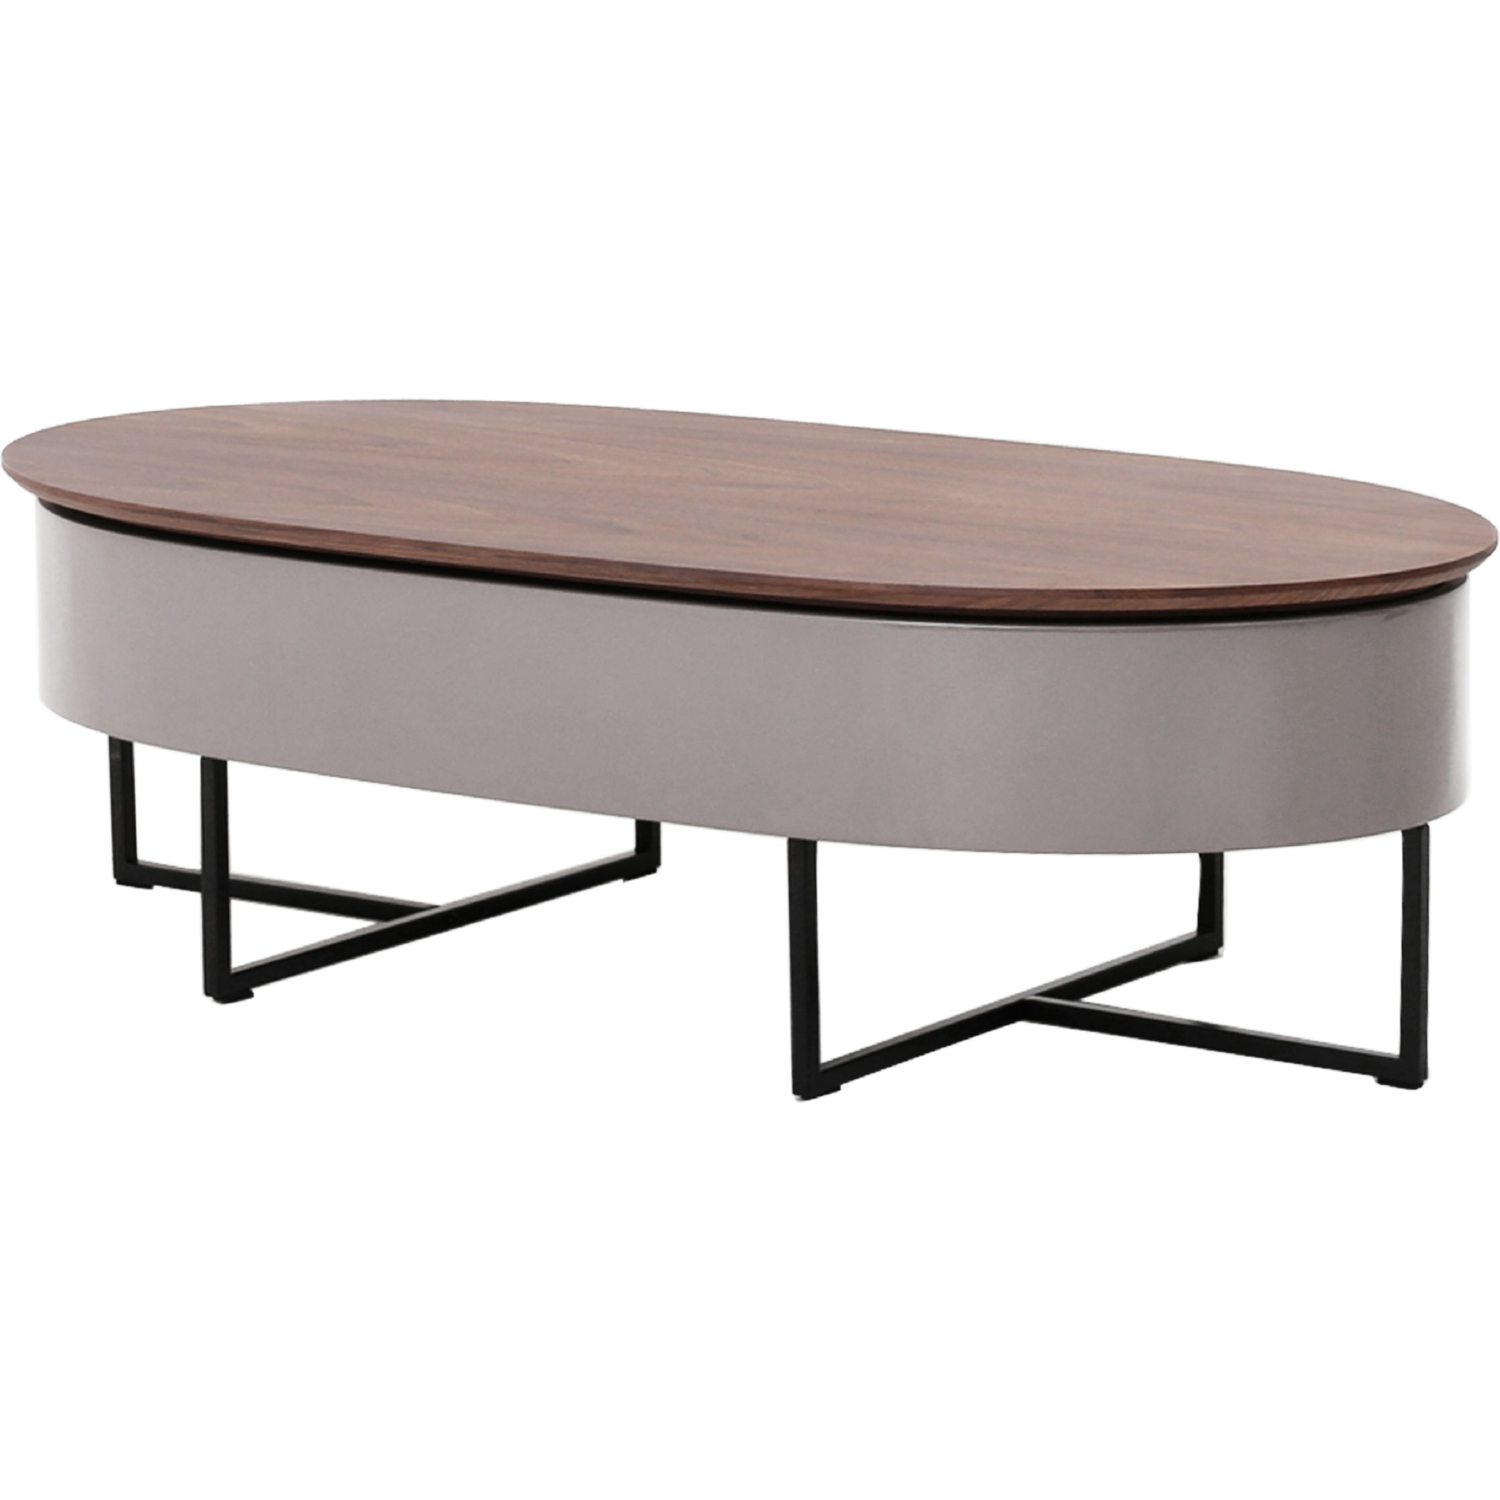 Oval Lift Top Coffee Table Part - 38: Hansel Oval Lift-Top Coffee Table In Walnut U0026 Gray On Black Iron Legs